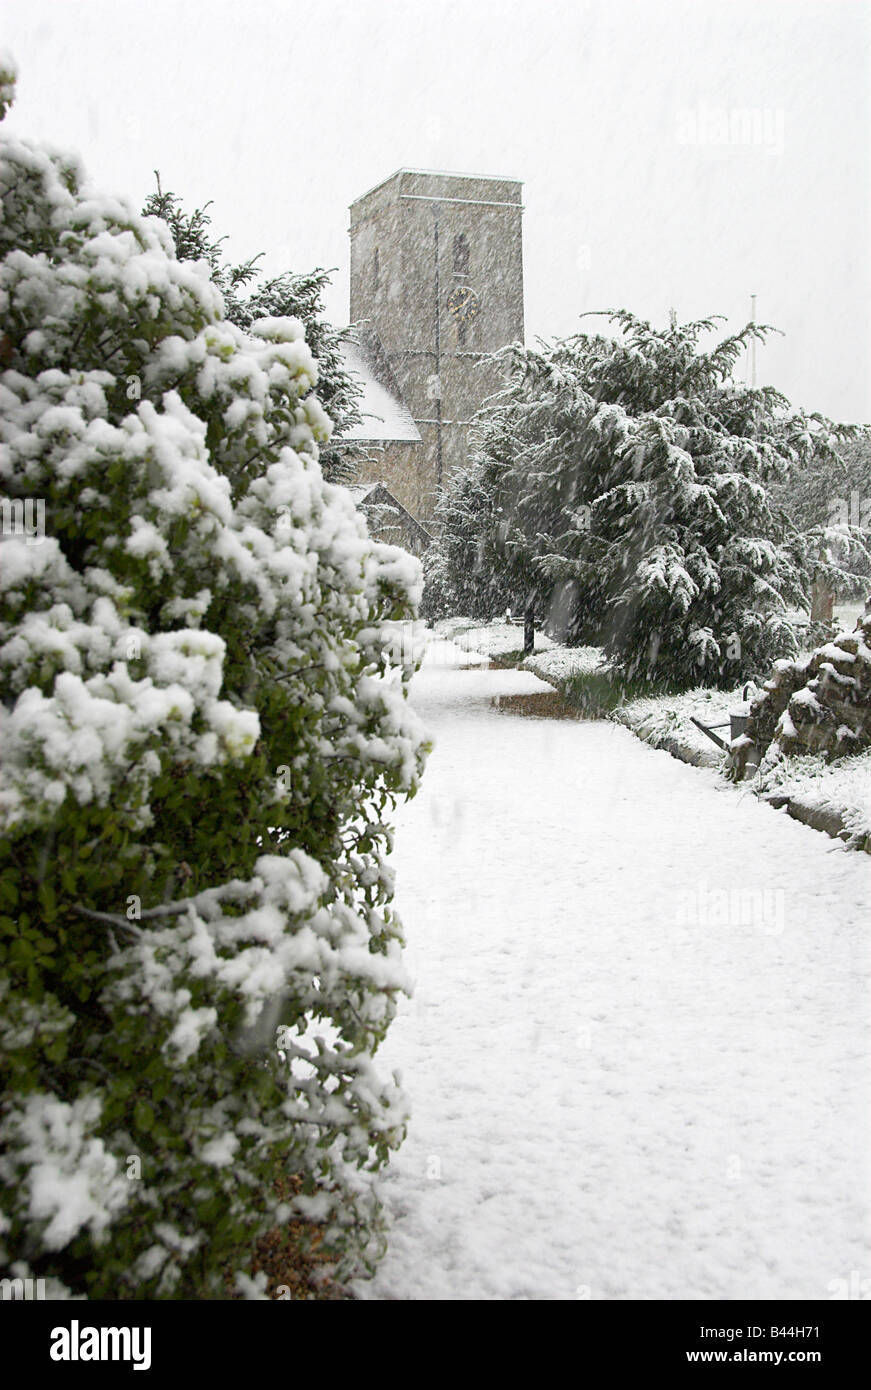 Hamble in Hampshire Covered in Snow - Stock Image